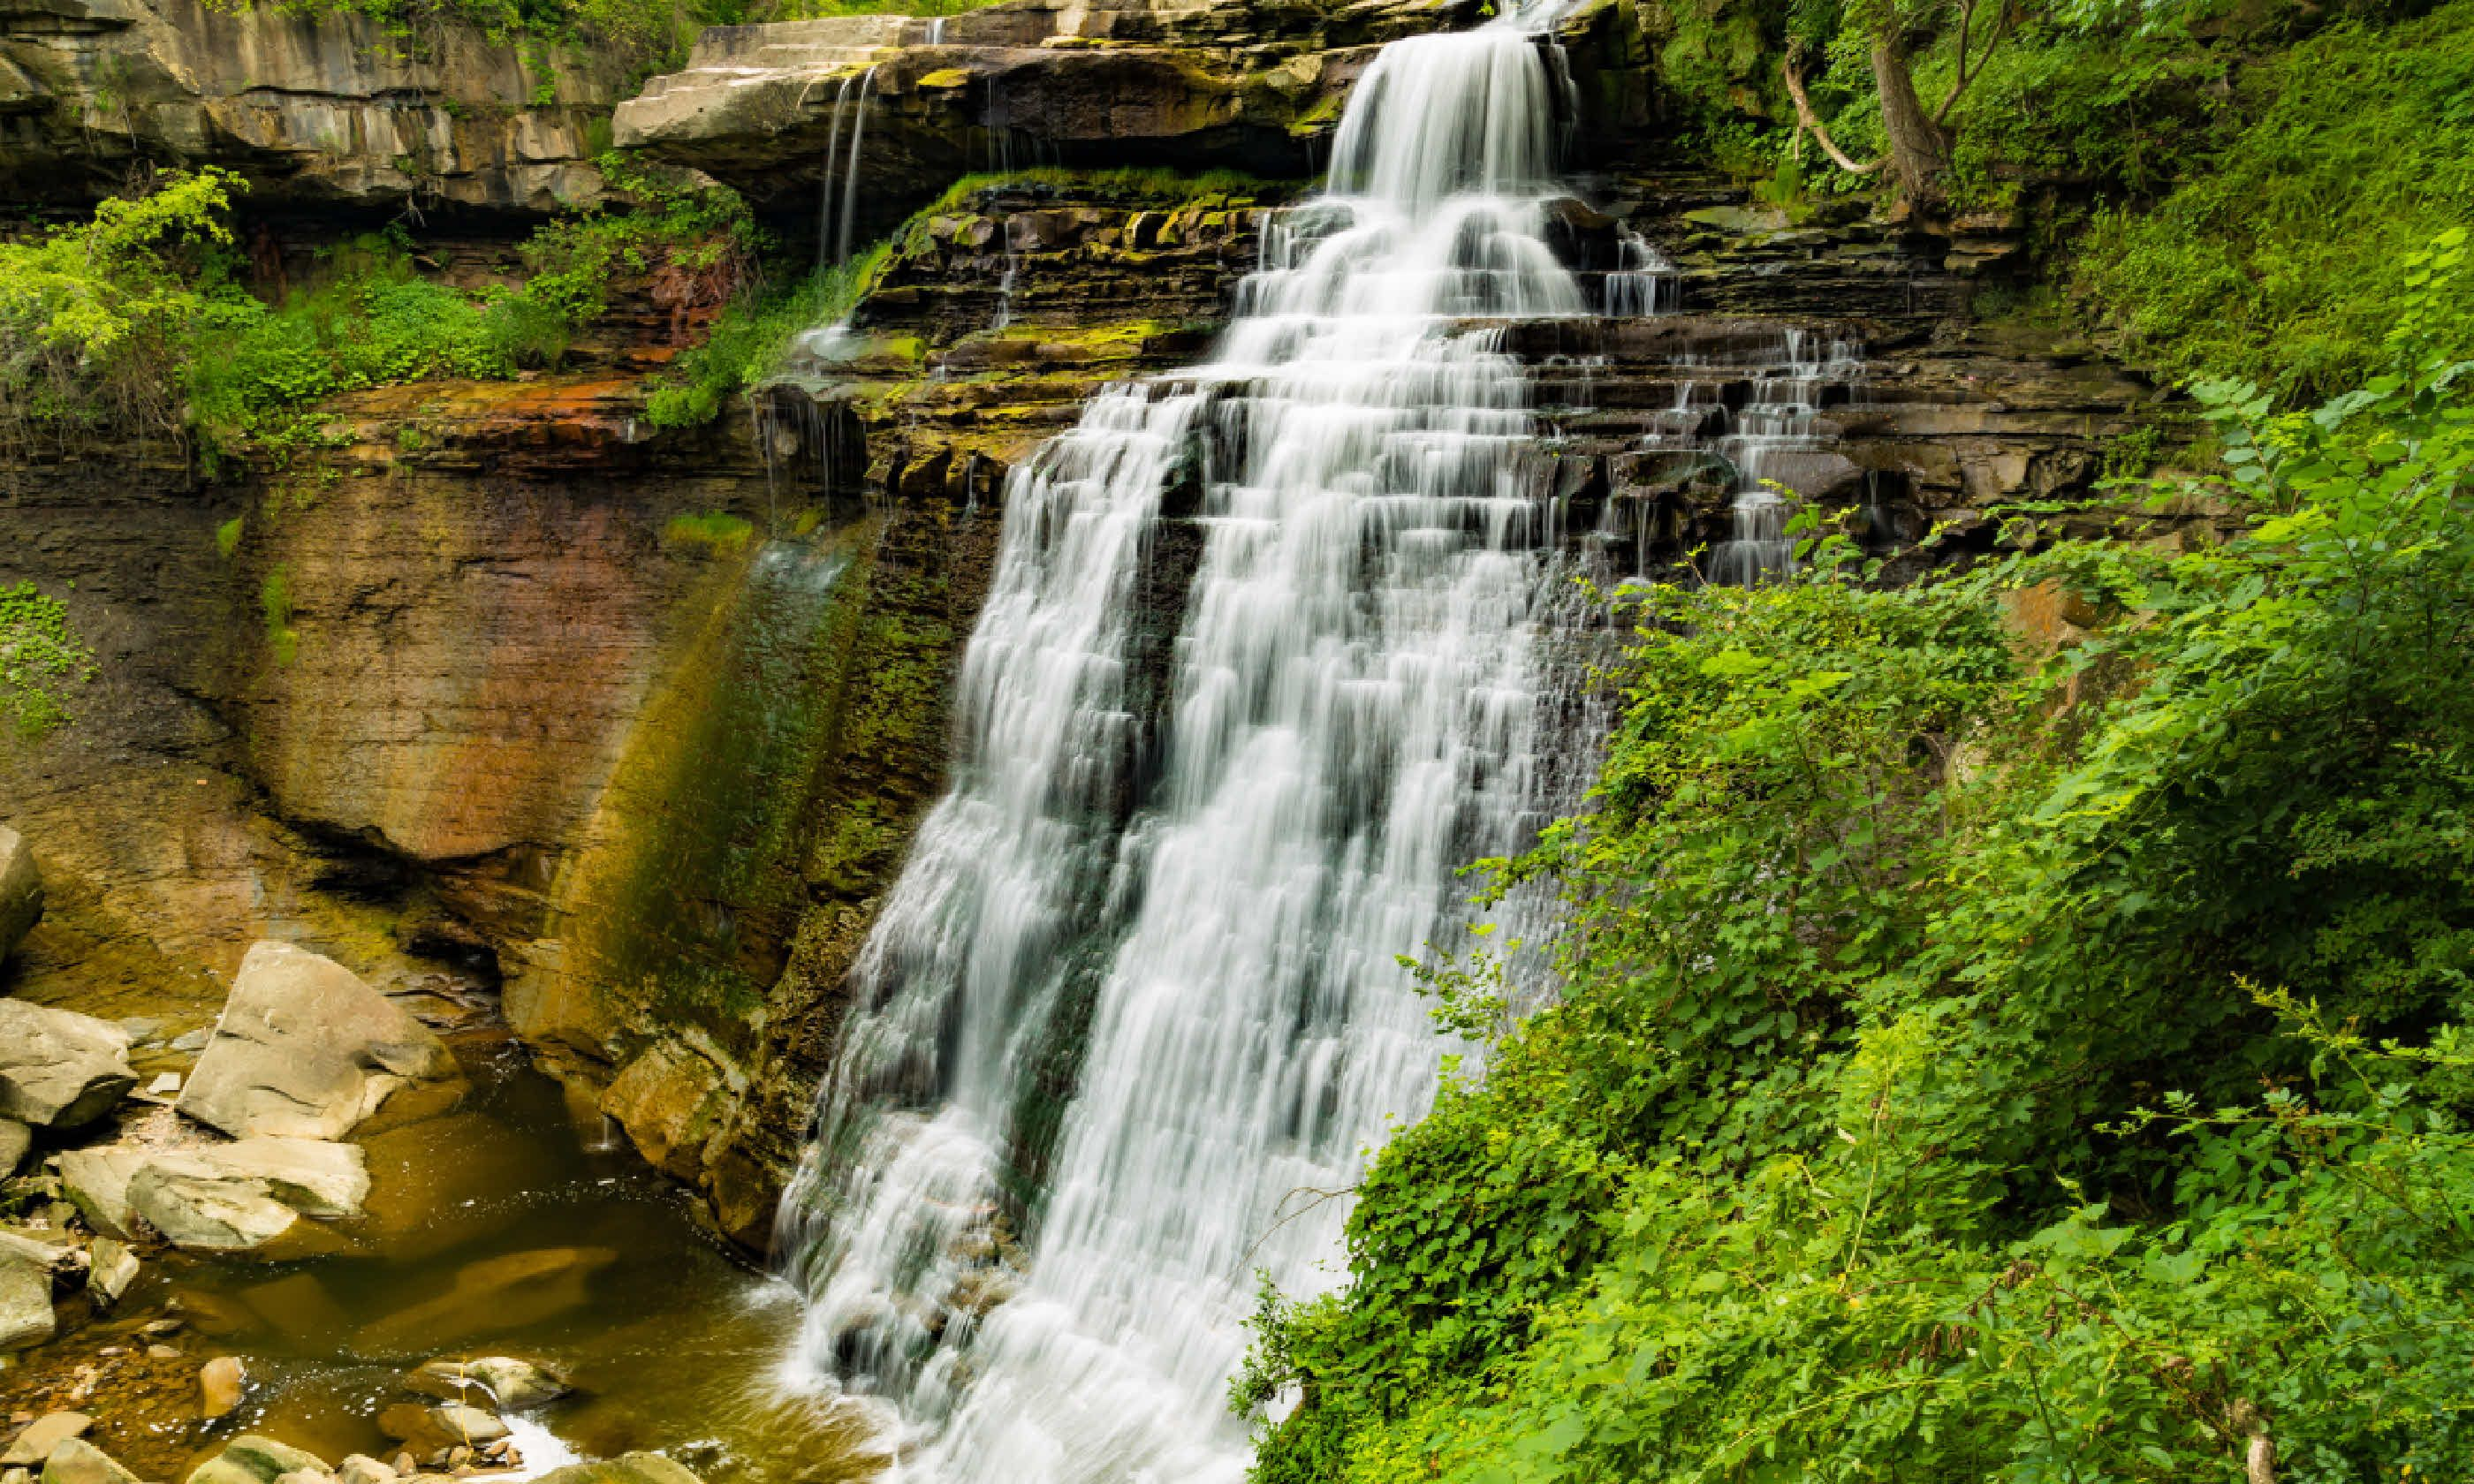 Brandywine Falls in Cuyahoga National Park (Shutterstock)